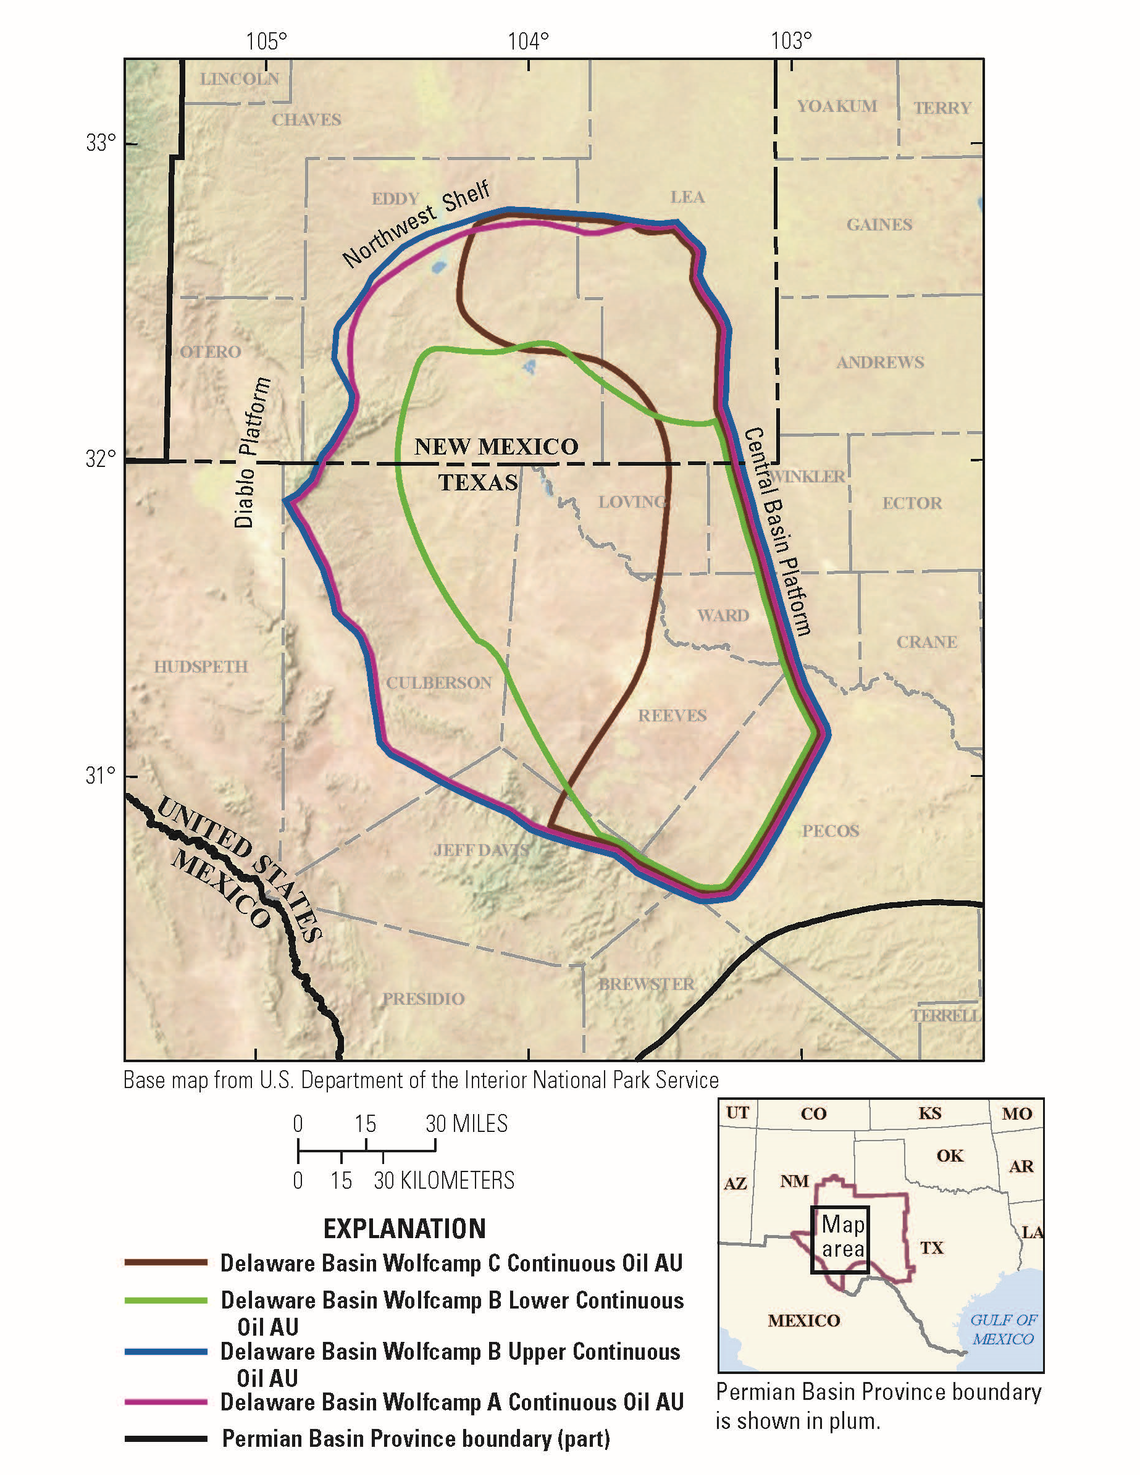 The U.S. Geological Survey potentially discovered the largest underground oil and gas resource in America's history in this area of New Mexico and Texas: the Wolf Camp Shale within the Bone Spring Formation in the Permian Basin.